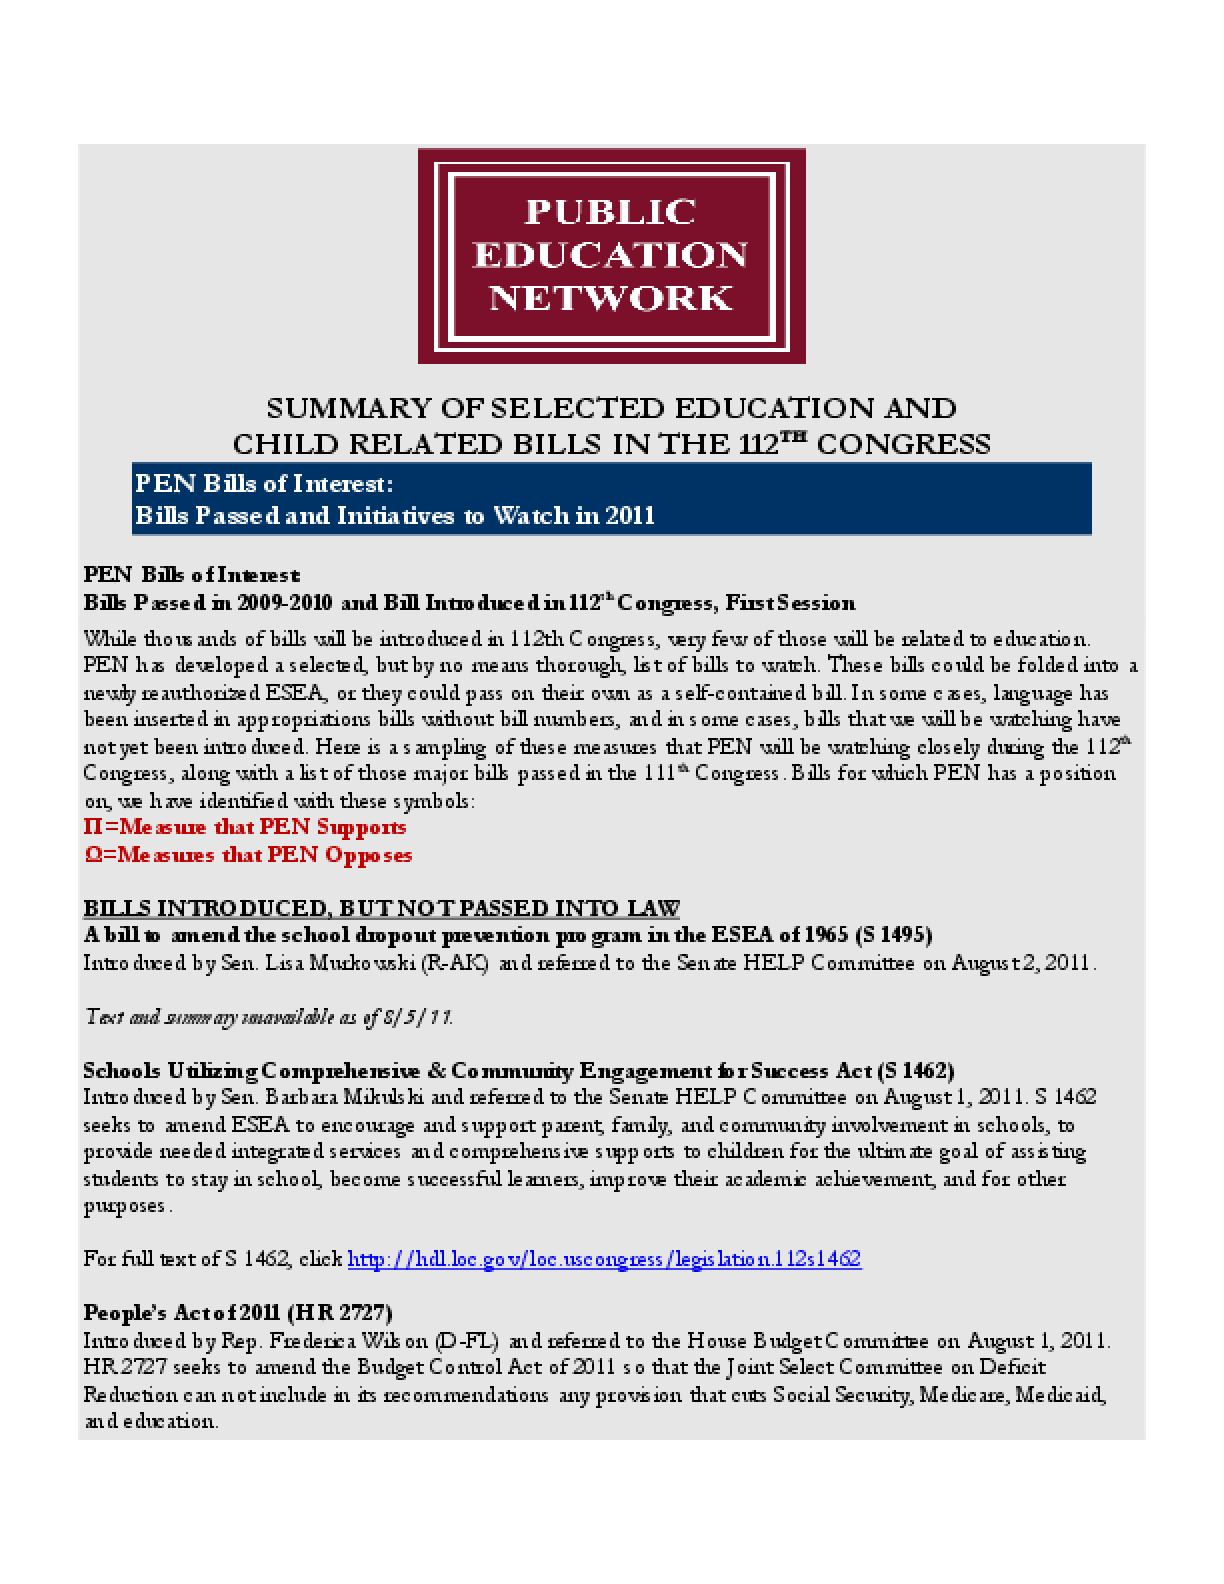 Summary of Selected Education and Child Related Bills in the 112th Congress